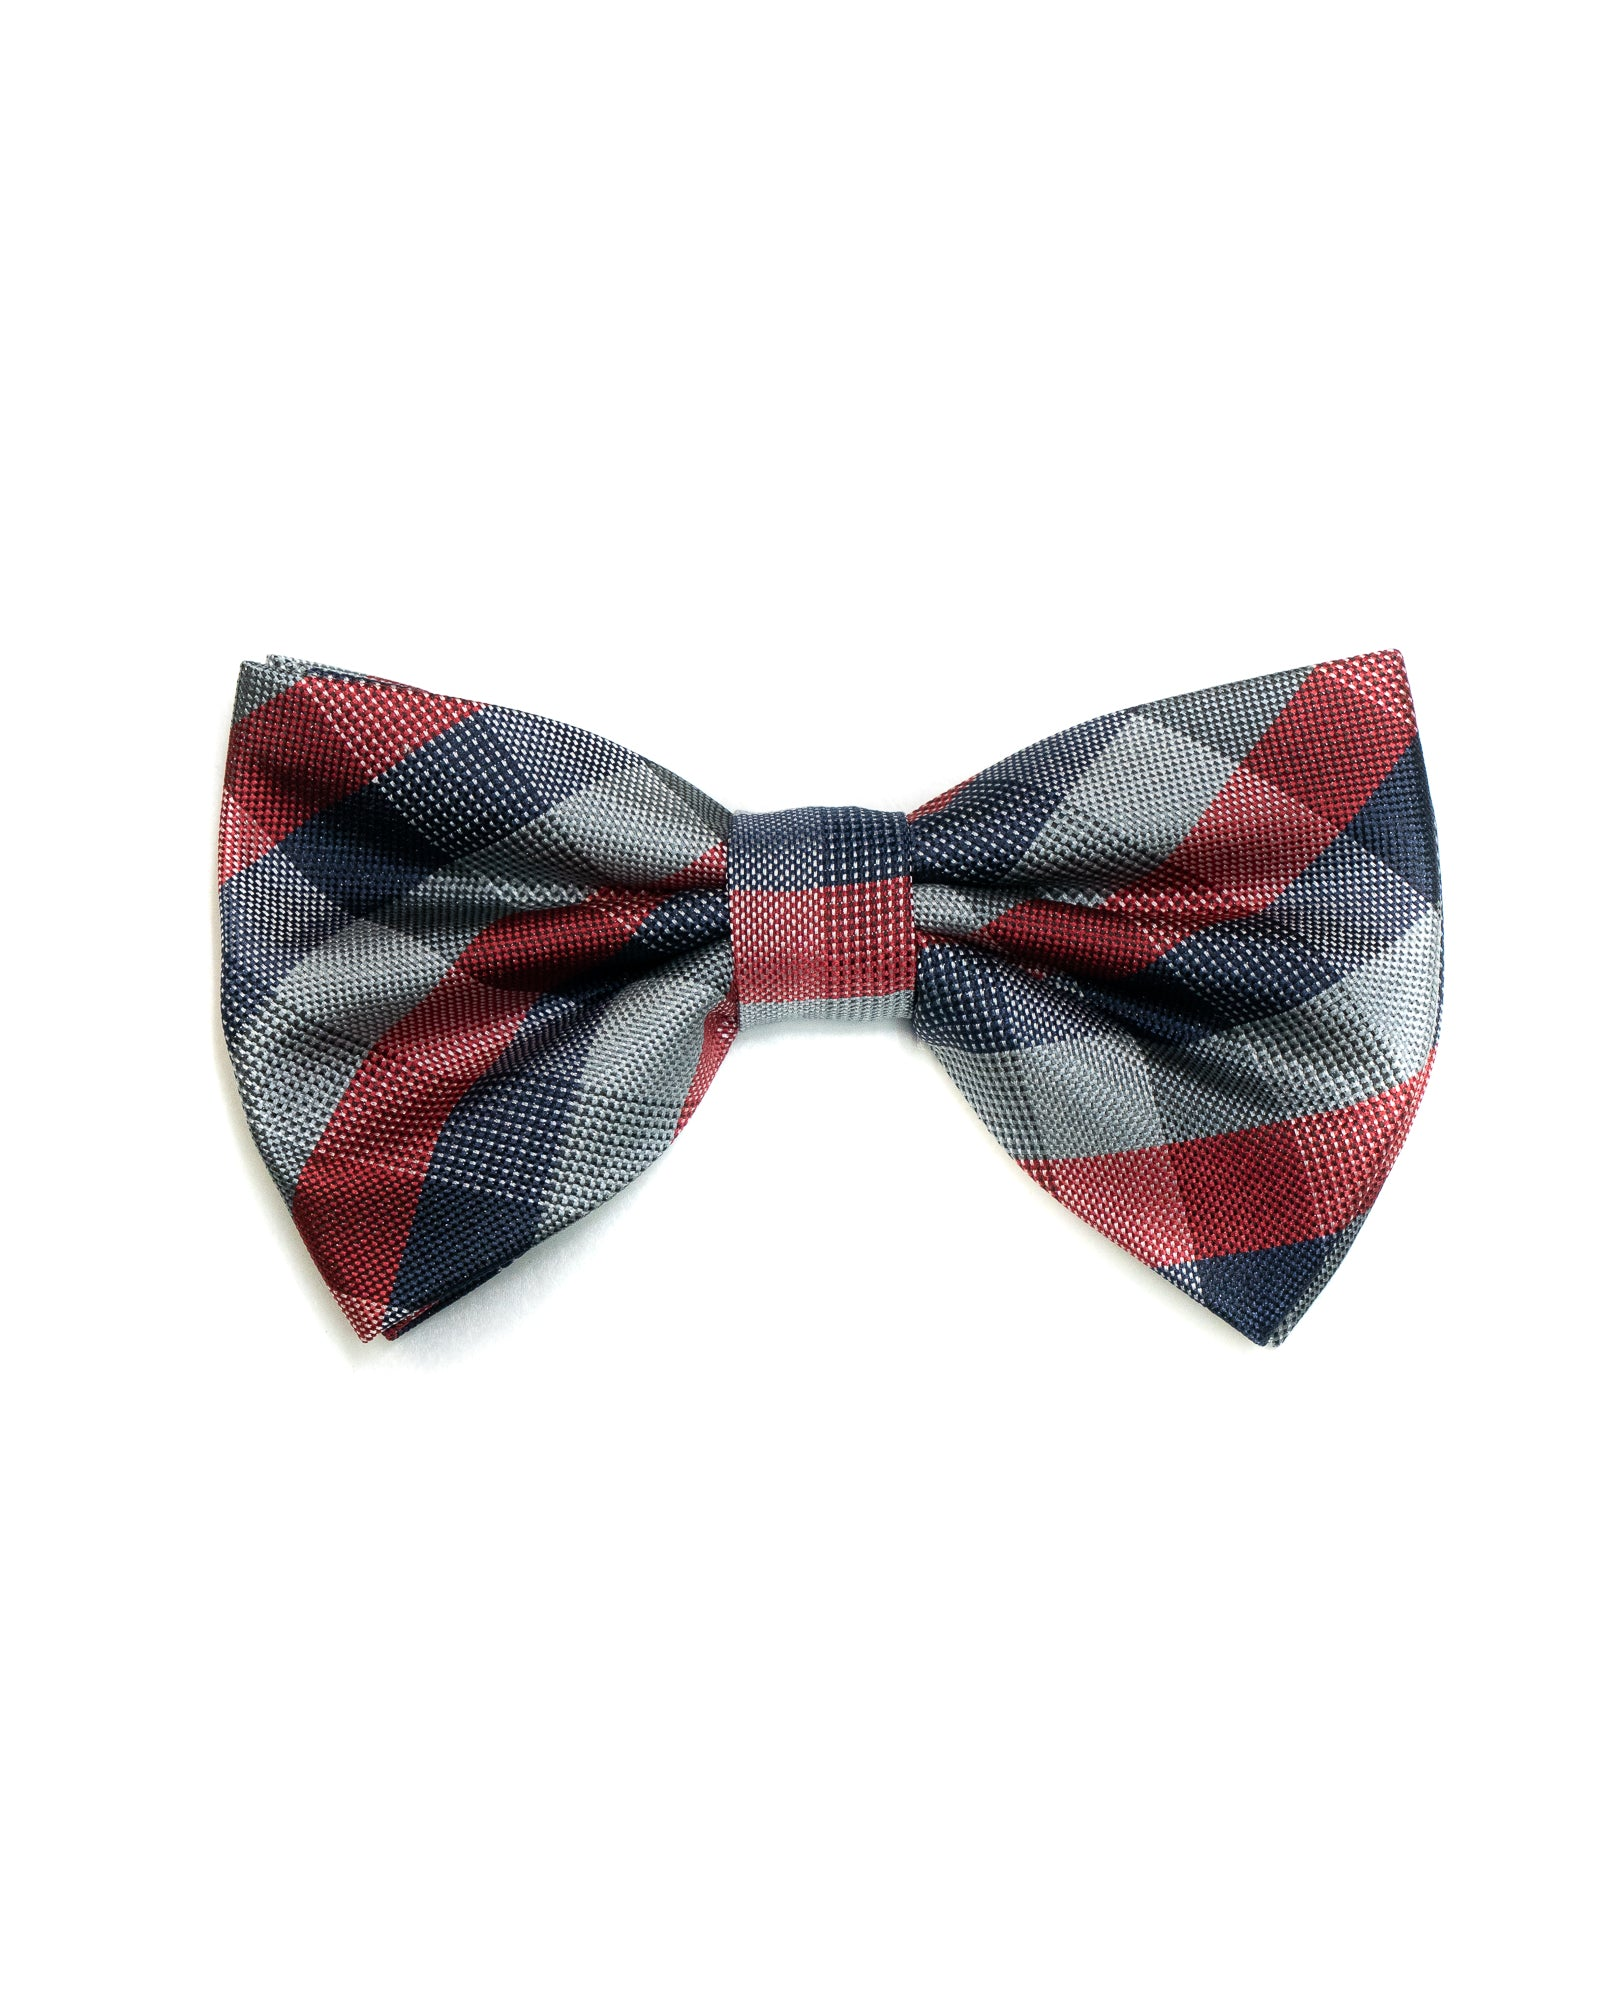 Bow Tie In Plaid Pattern Red & Navy - Rainwater's Men's Clothing and Tuxedo Rental